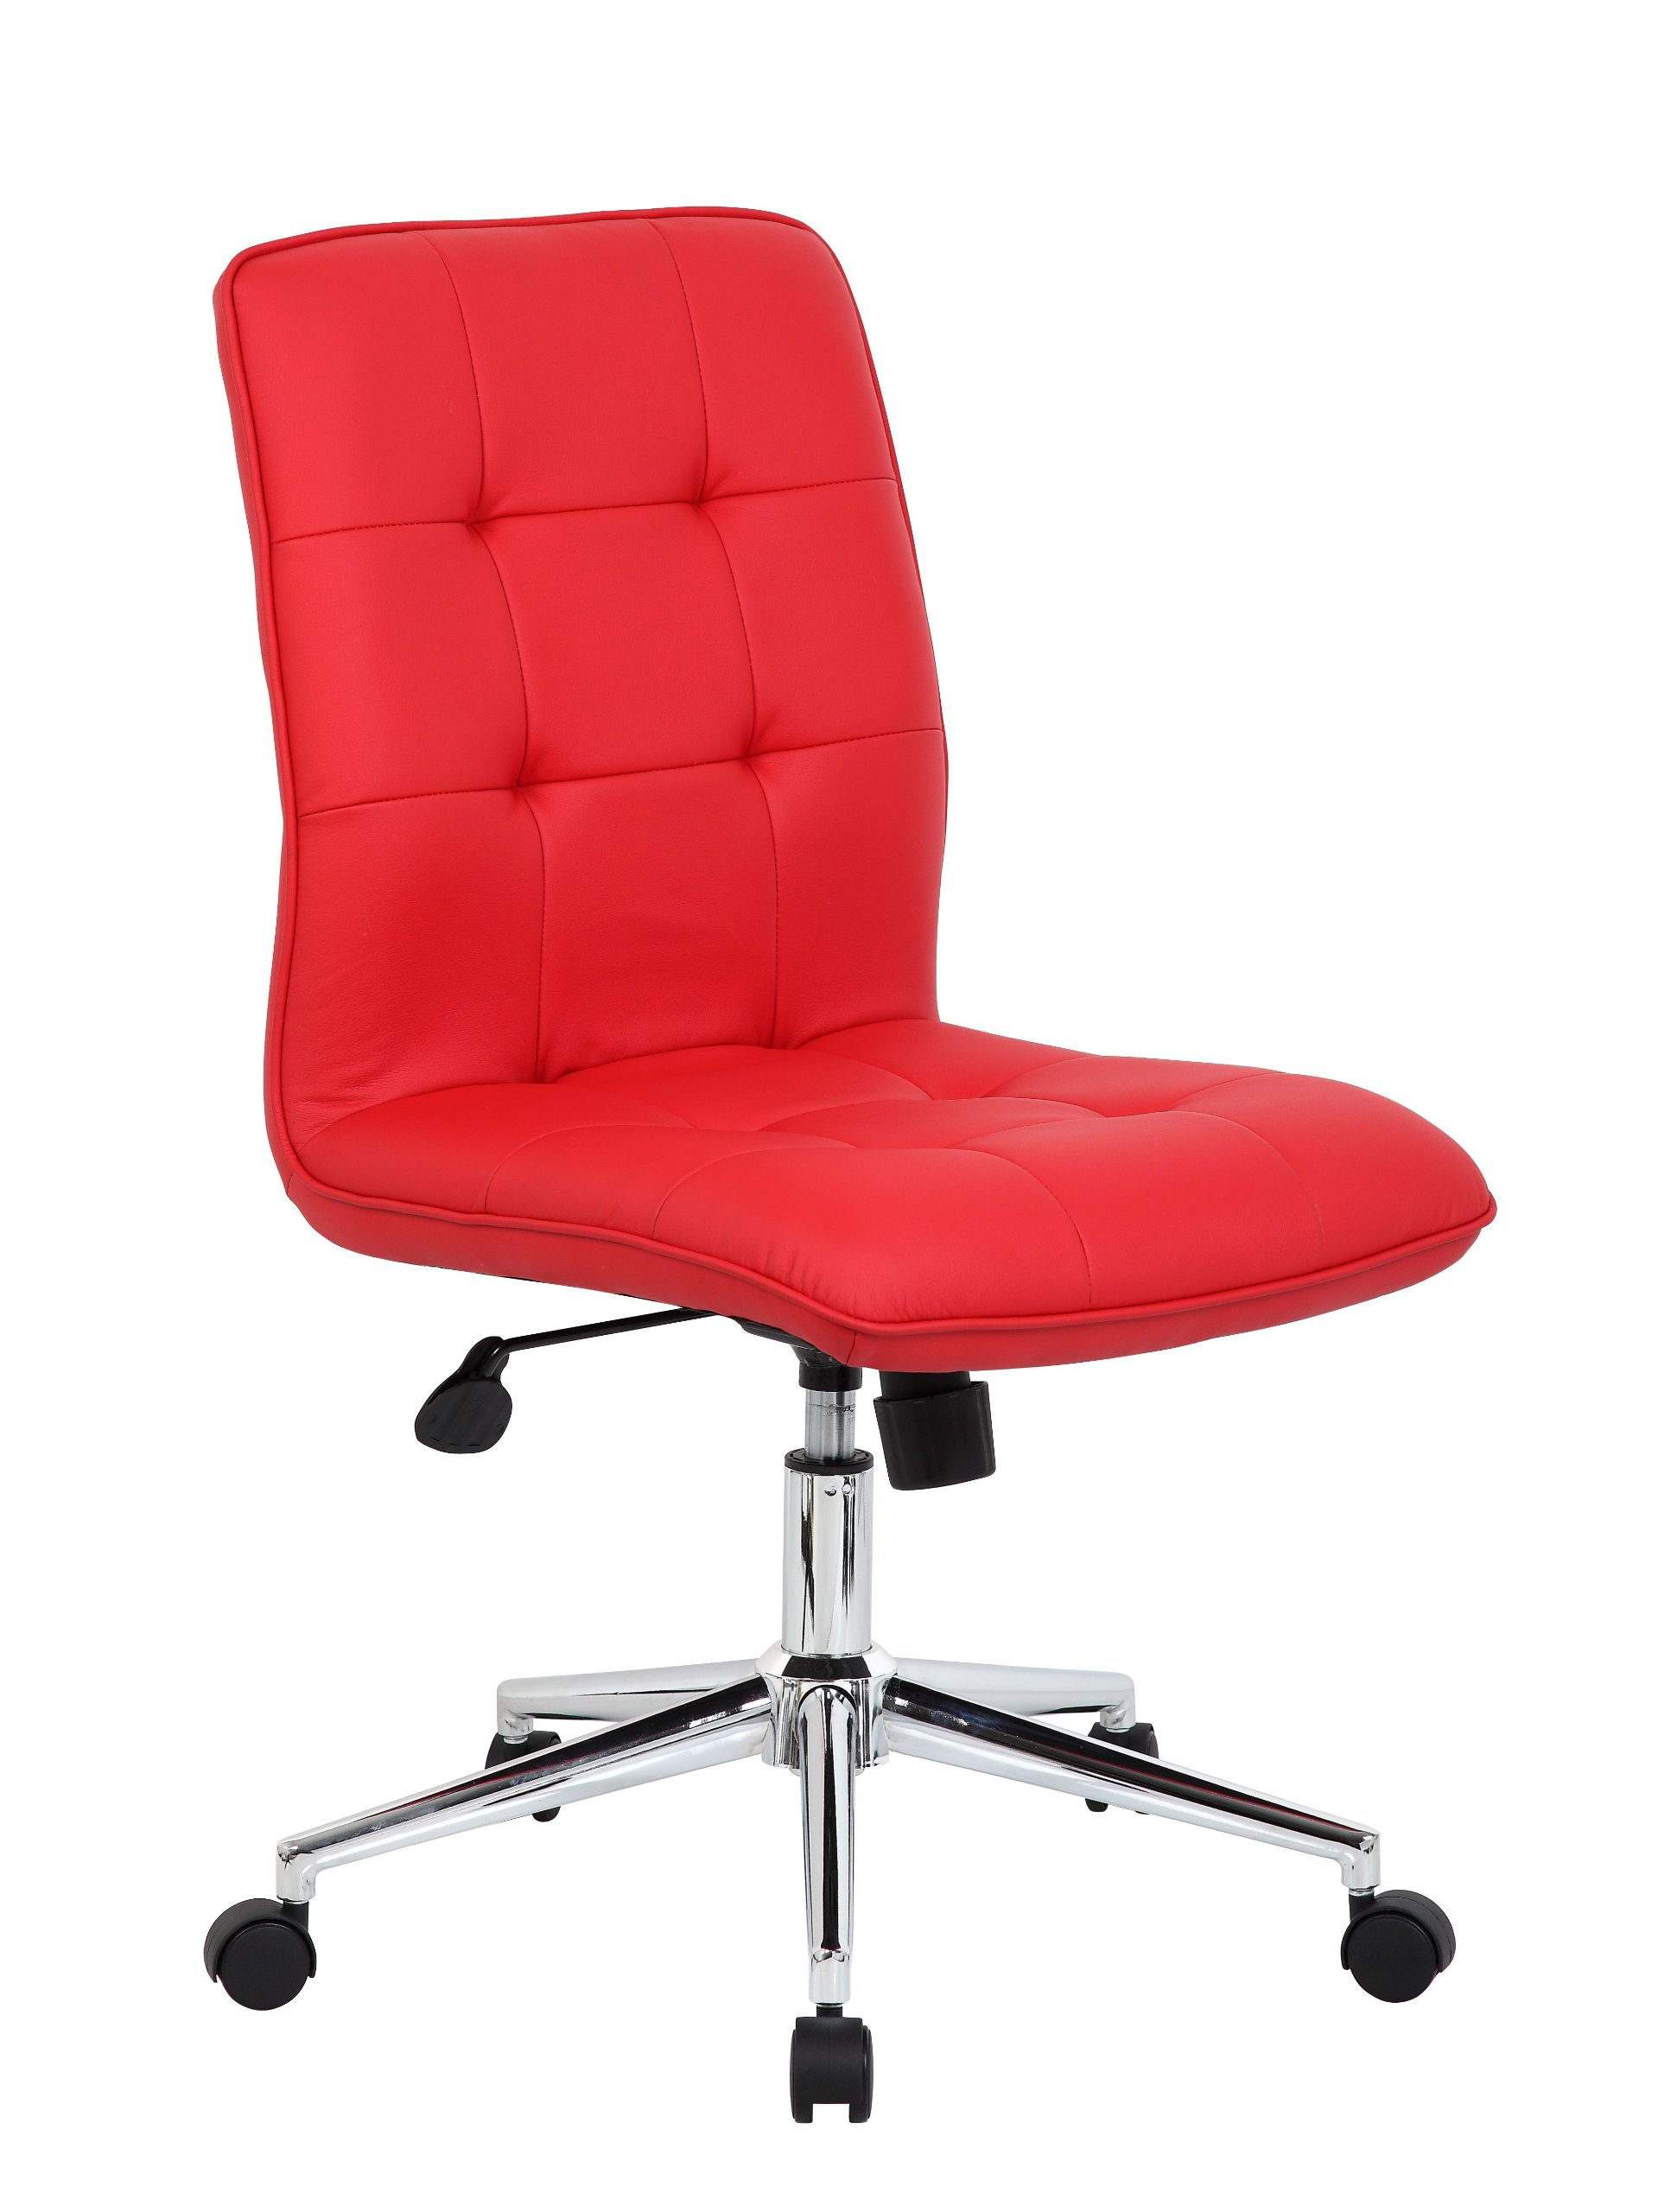 Boss Office Products B330-RD Mellennial Modern Home Office Chair without Arms in Red by Boss Office Products